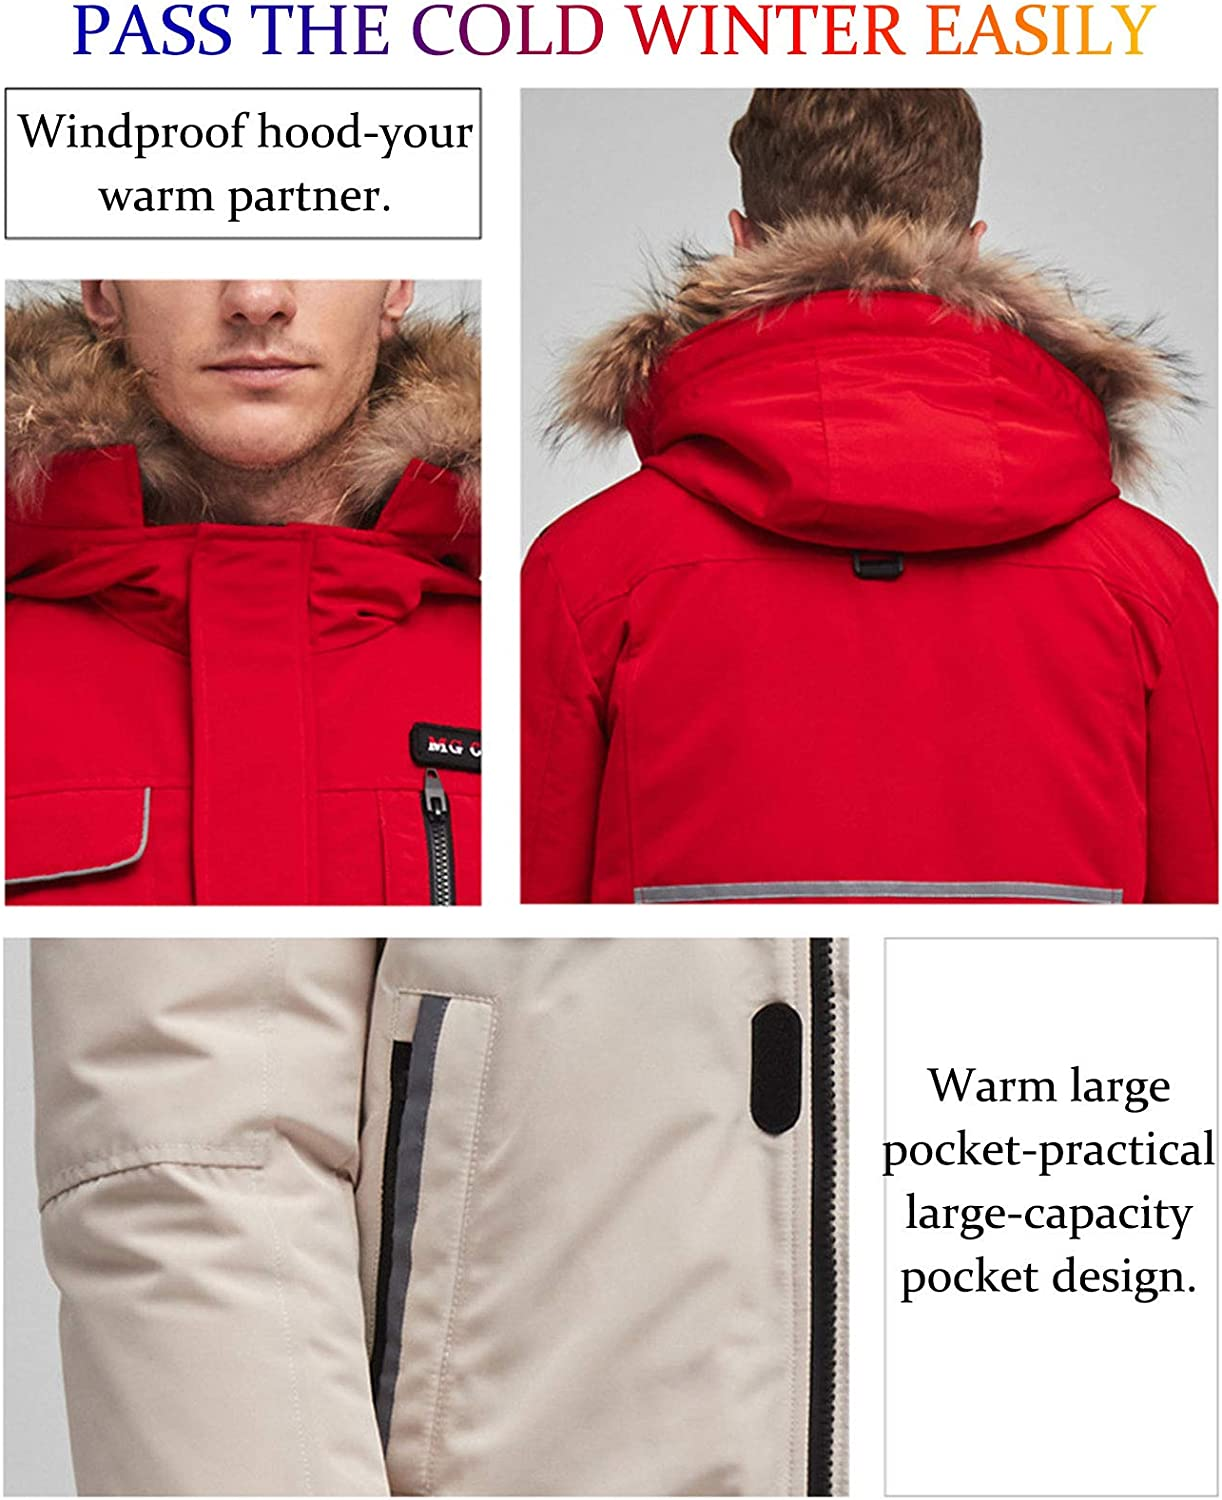 DUTUI Men's Winter Down Jacket, 80% White Duck Down Short Thick Down Jacket Casual Workwear Men's and Women's Warm Down Jacket,Red,XXL